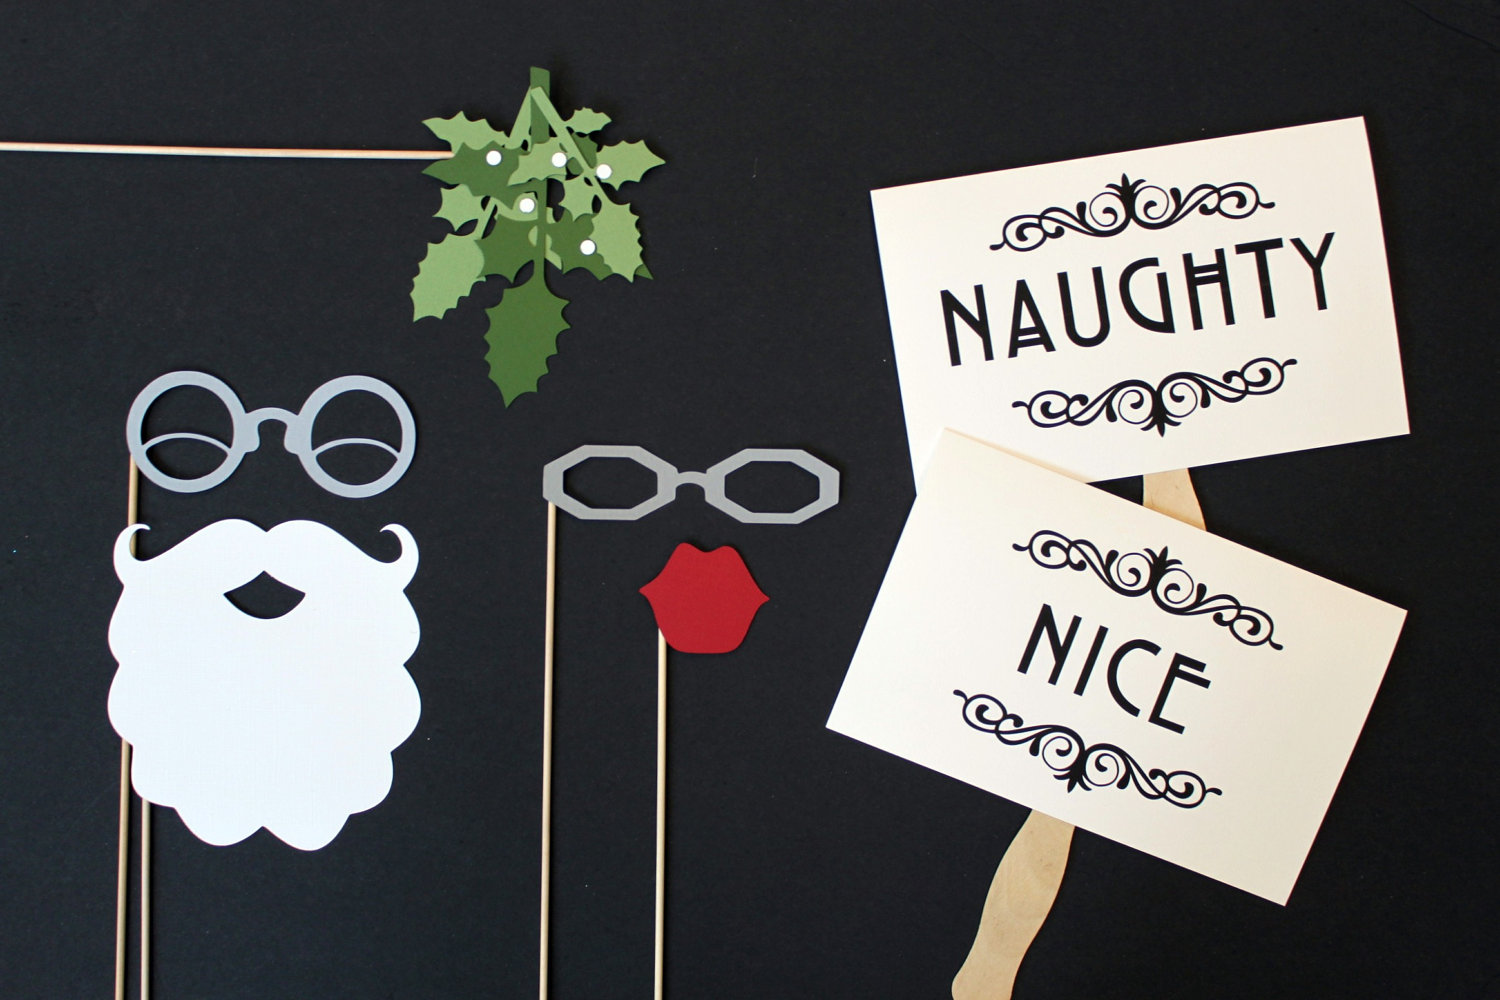 Holiday-themed-wedding-photobooth-props.original